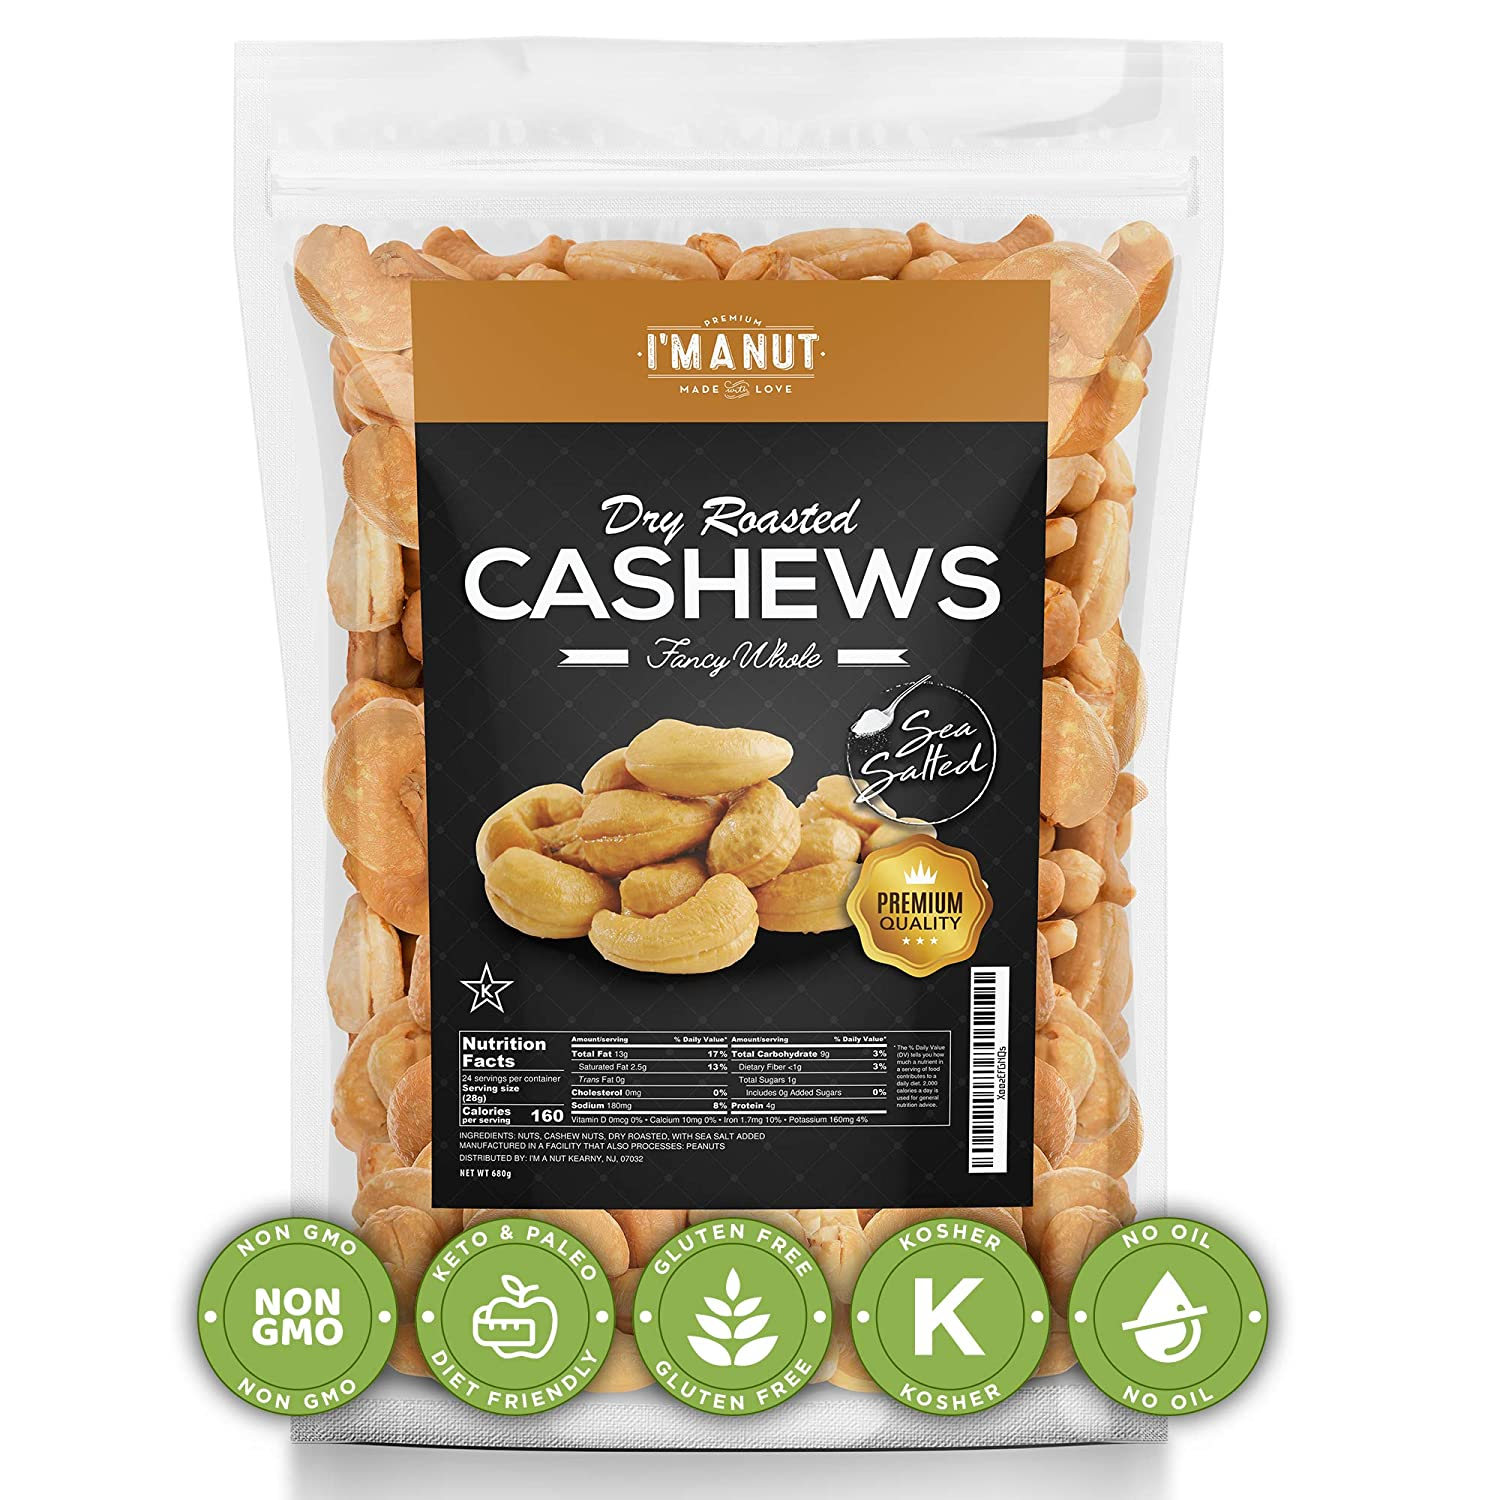 Oven Dry Roasted Cashews with Sea salt, 1.5Lbs, Fancy Whole. No Oil | No PPO | Vegan and Keto Friendly | Made from Natural cashews,